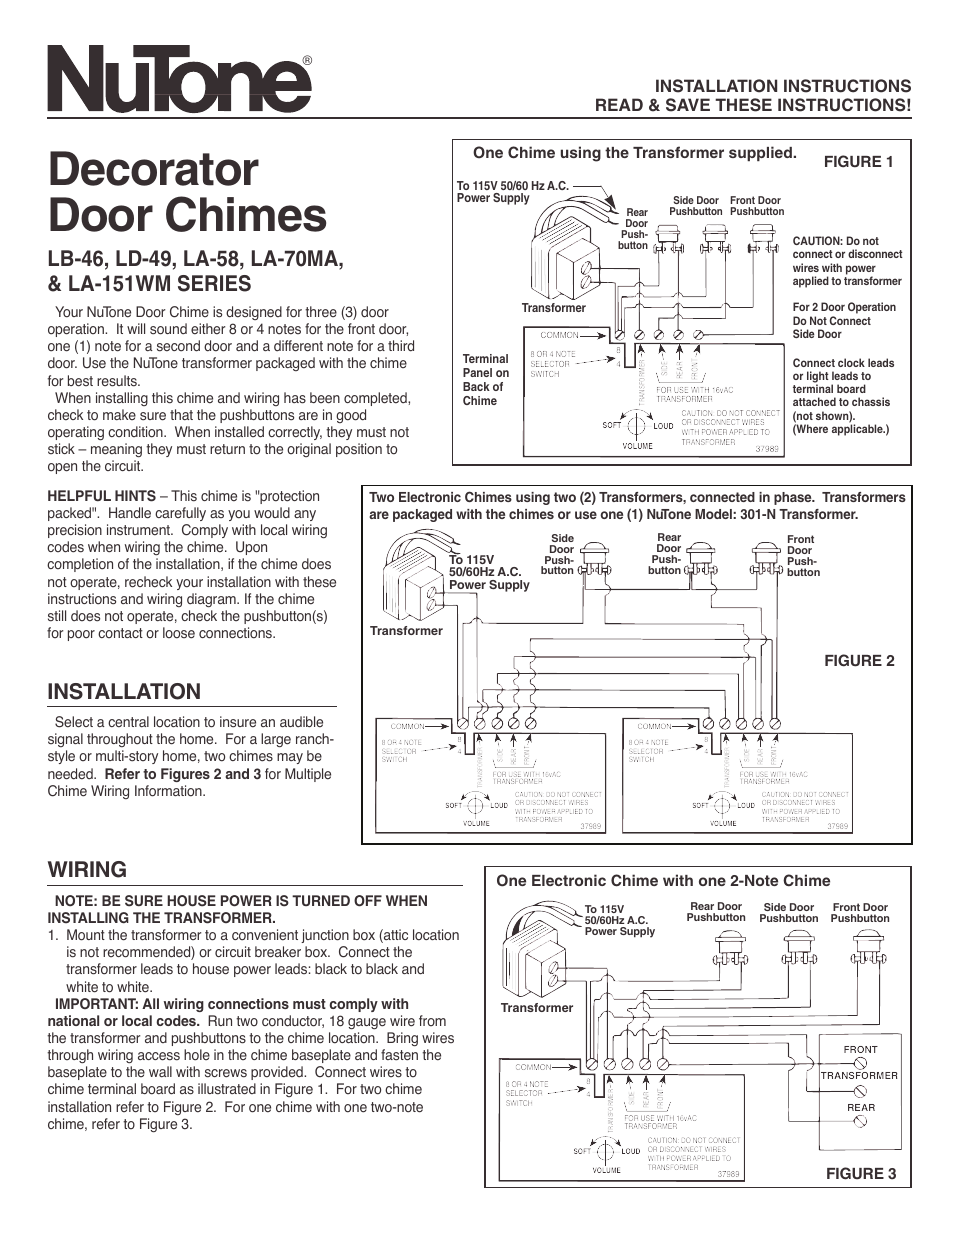 double chime wiring diagram friedland doorbell wiring